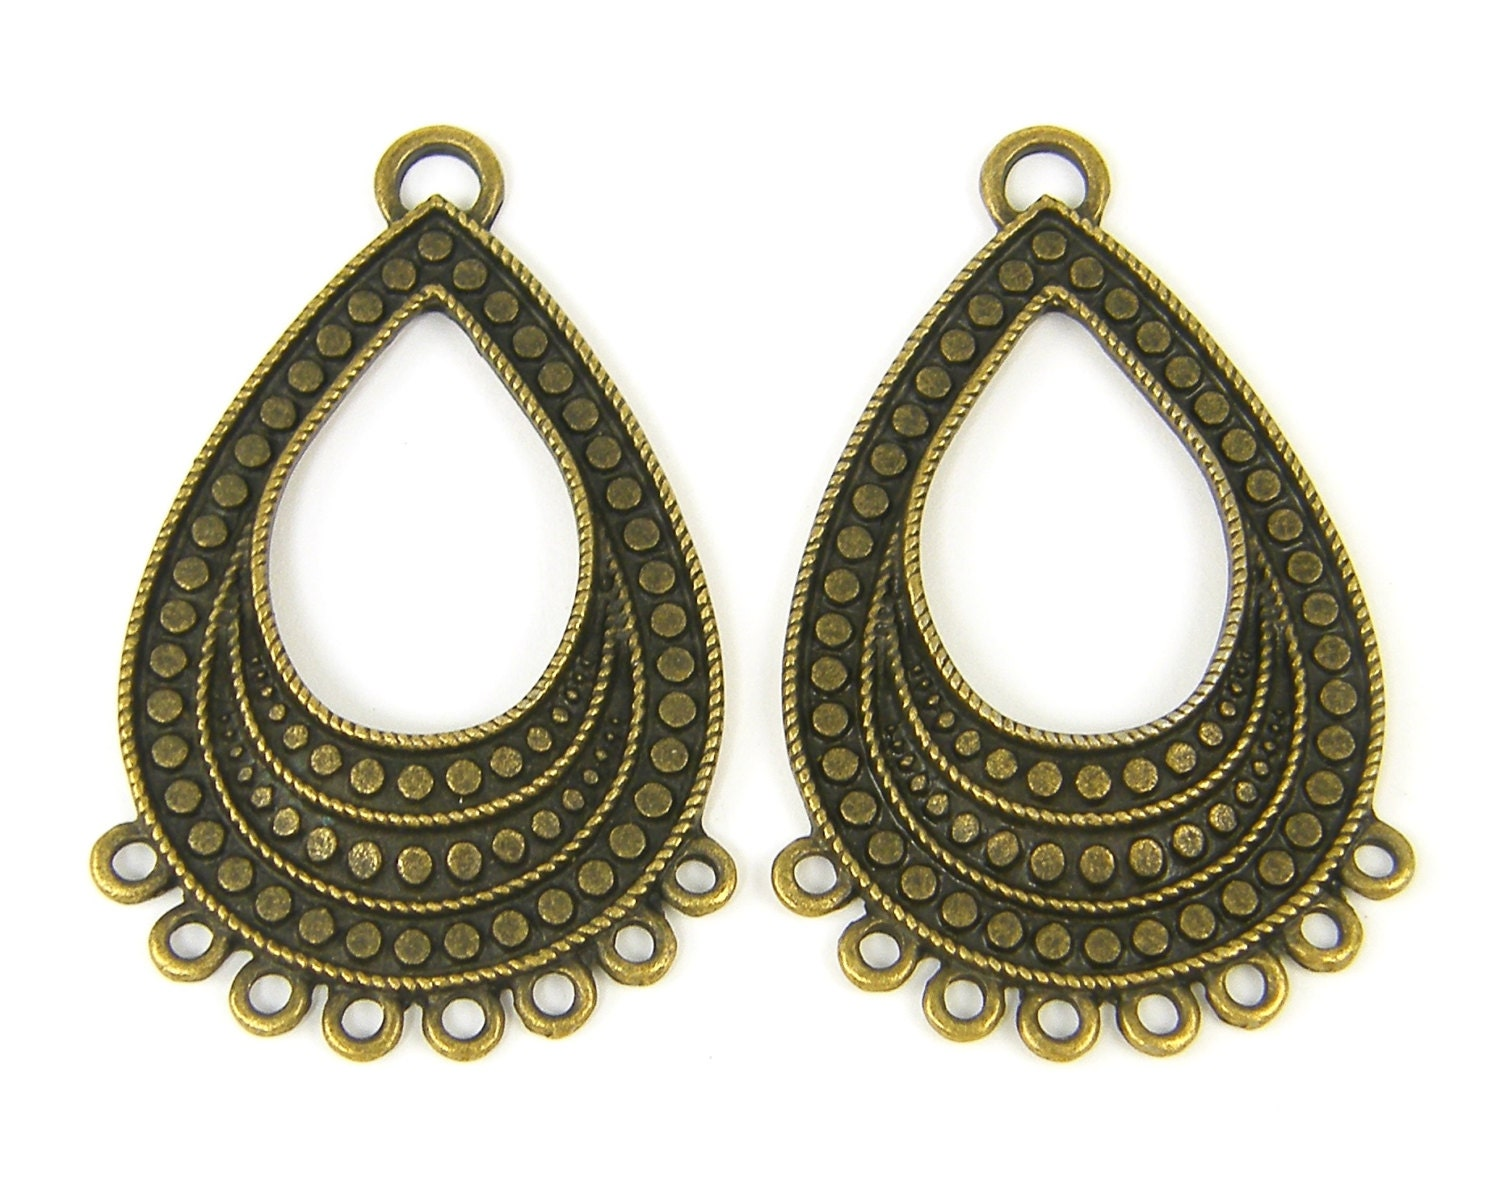 Teardrop chandelier earring findings antique brass chandelier teardrop chandelier earring findings antique brass chandelier earring parts multiple hole earring components an7 142 arubaitofo Image collections